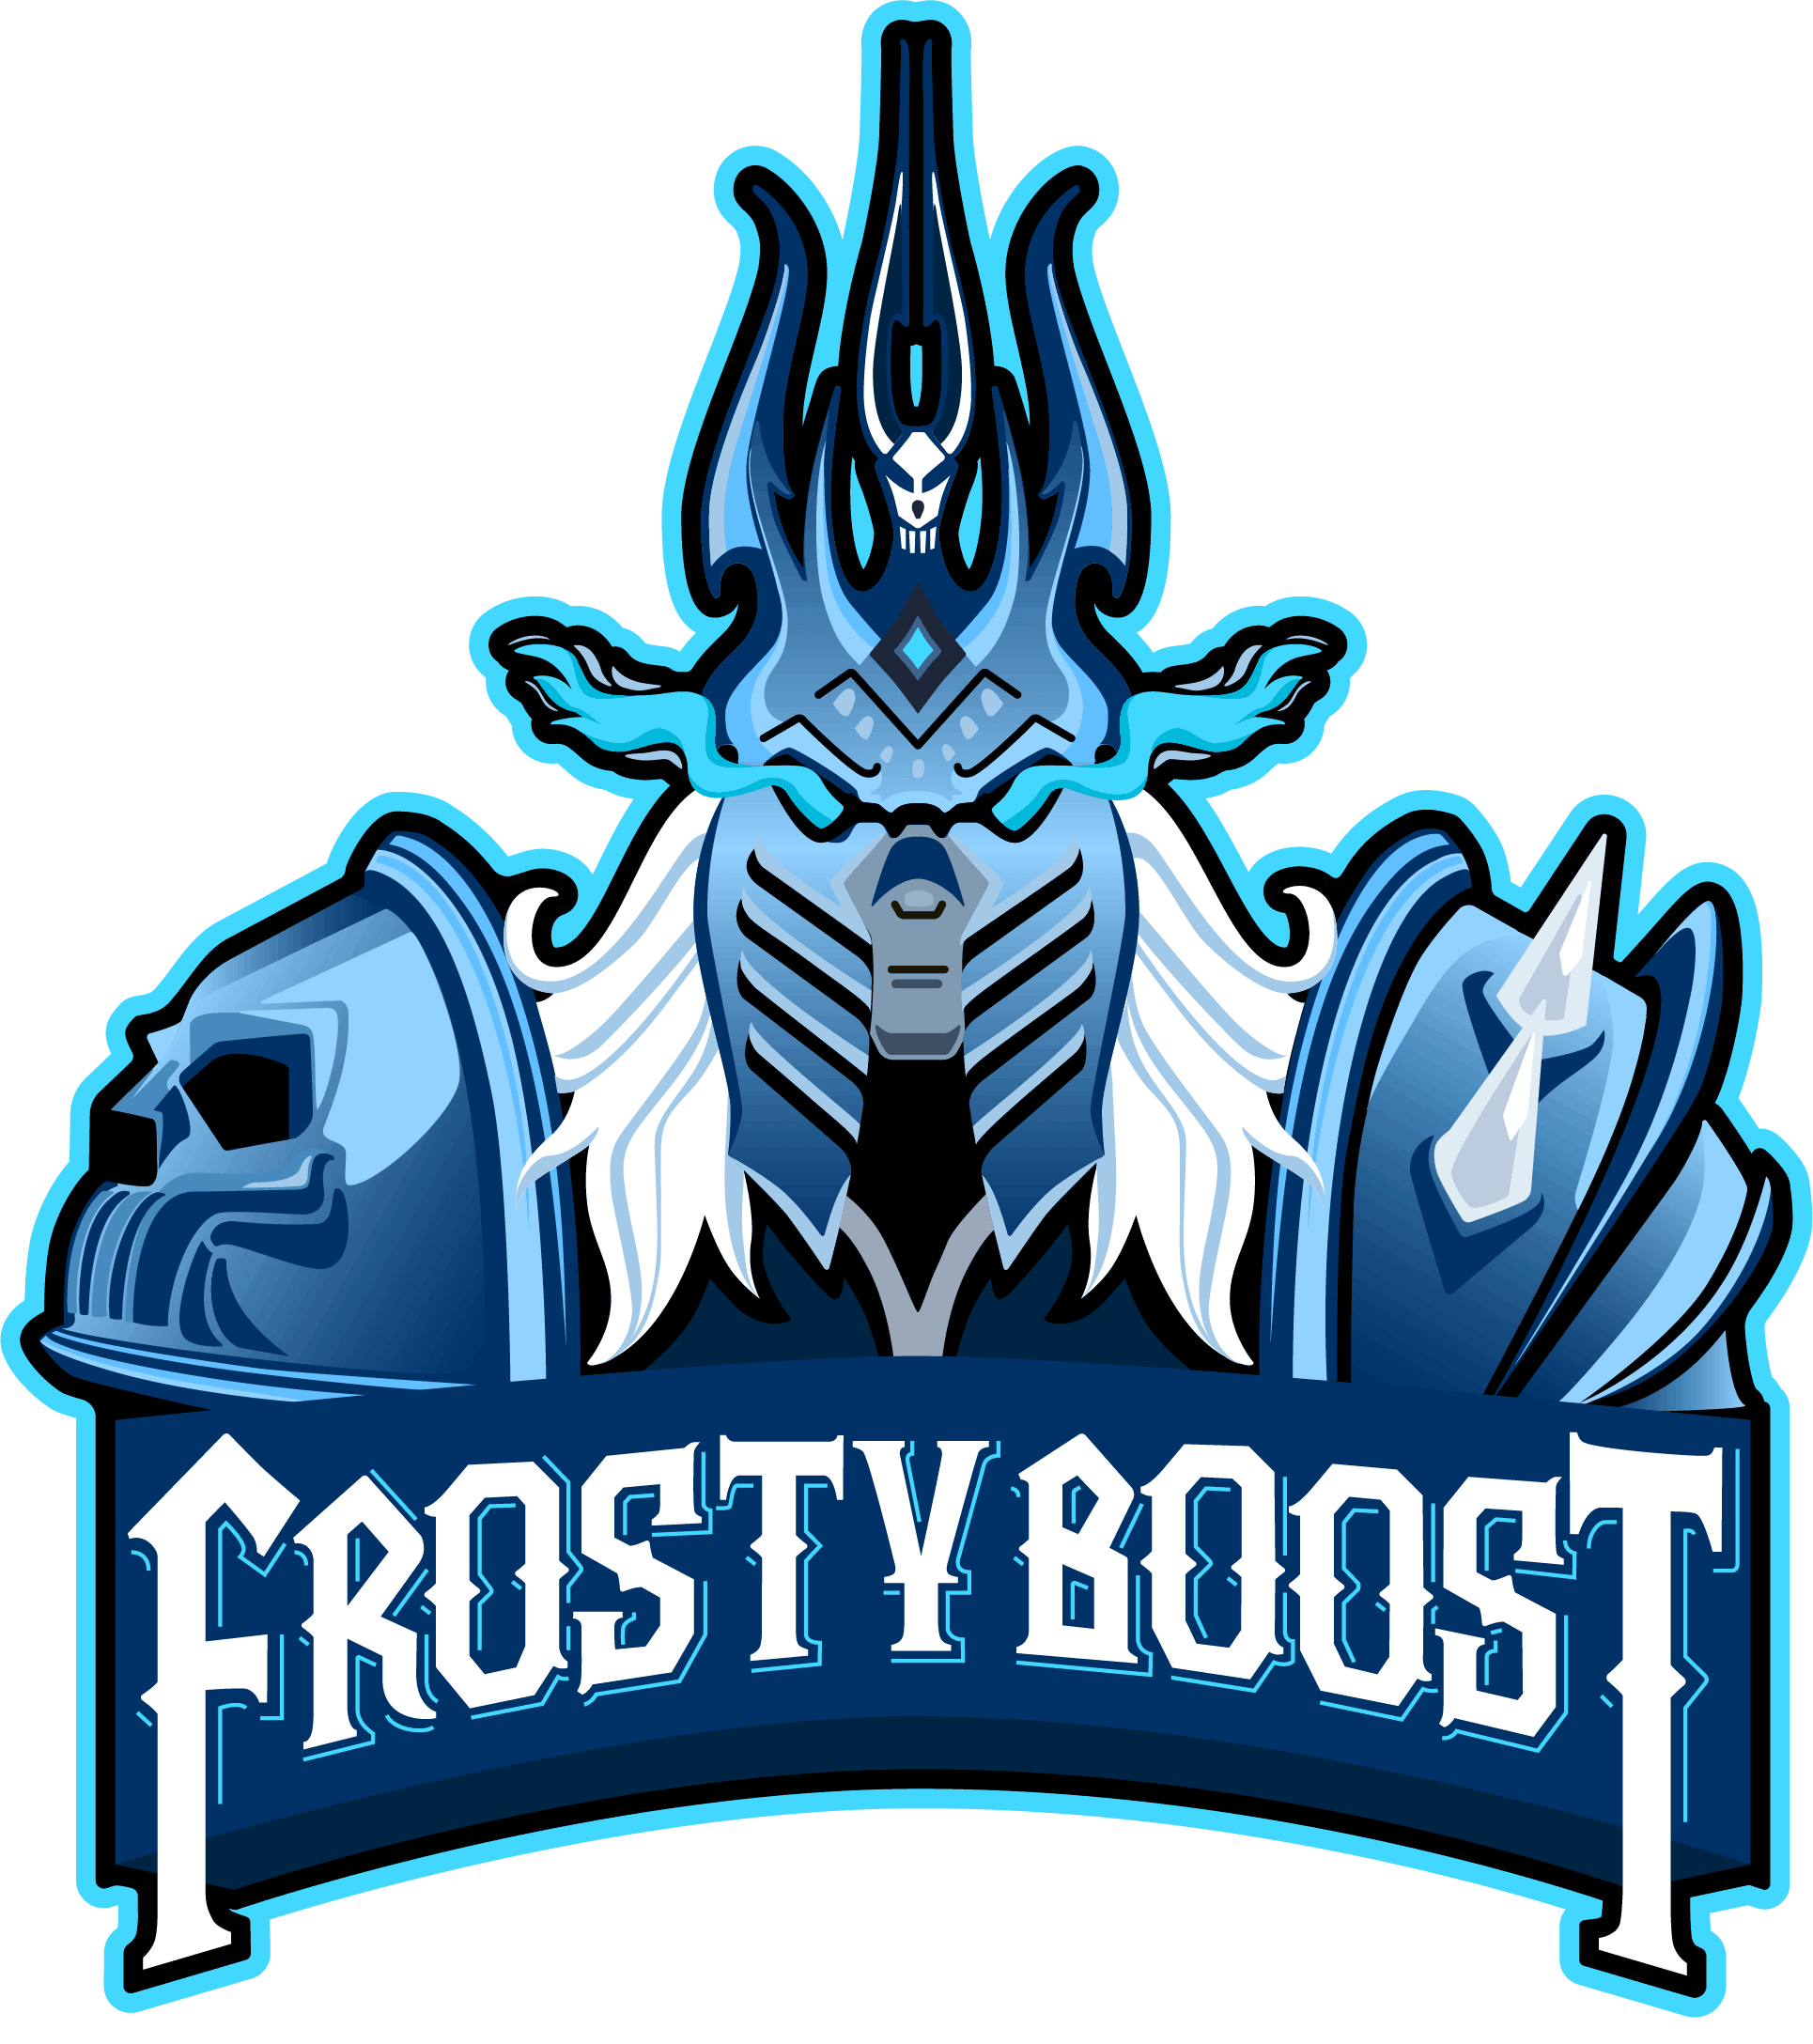 Frostyboost: the best platform for buying gold, equipment and leveling characters